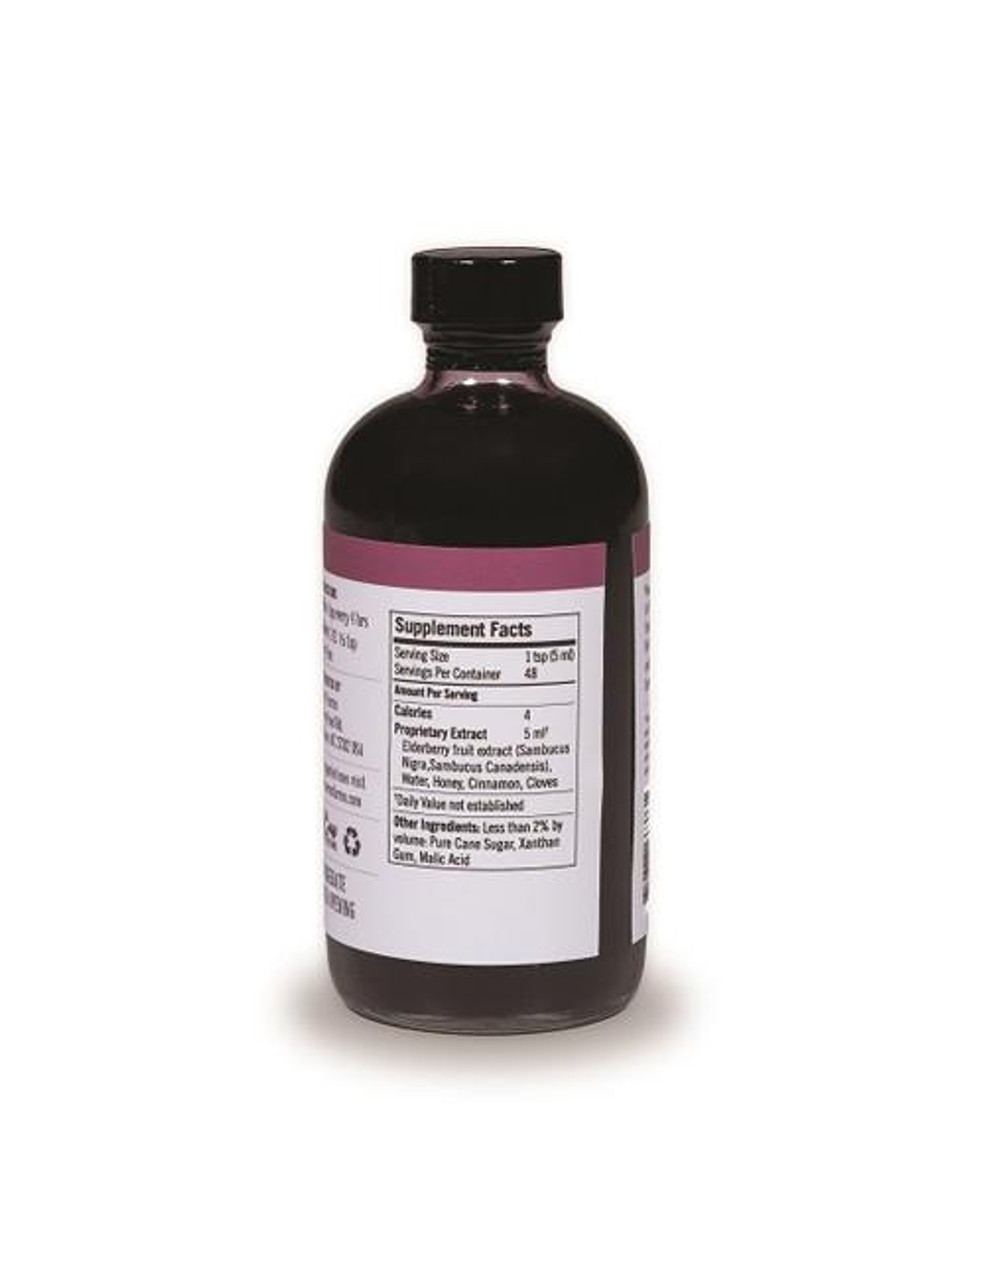 Elderberry Wellness Syrup (8 oz.) glass bottle by Norm's Farms